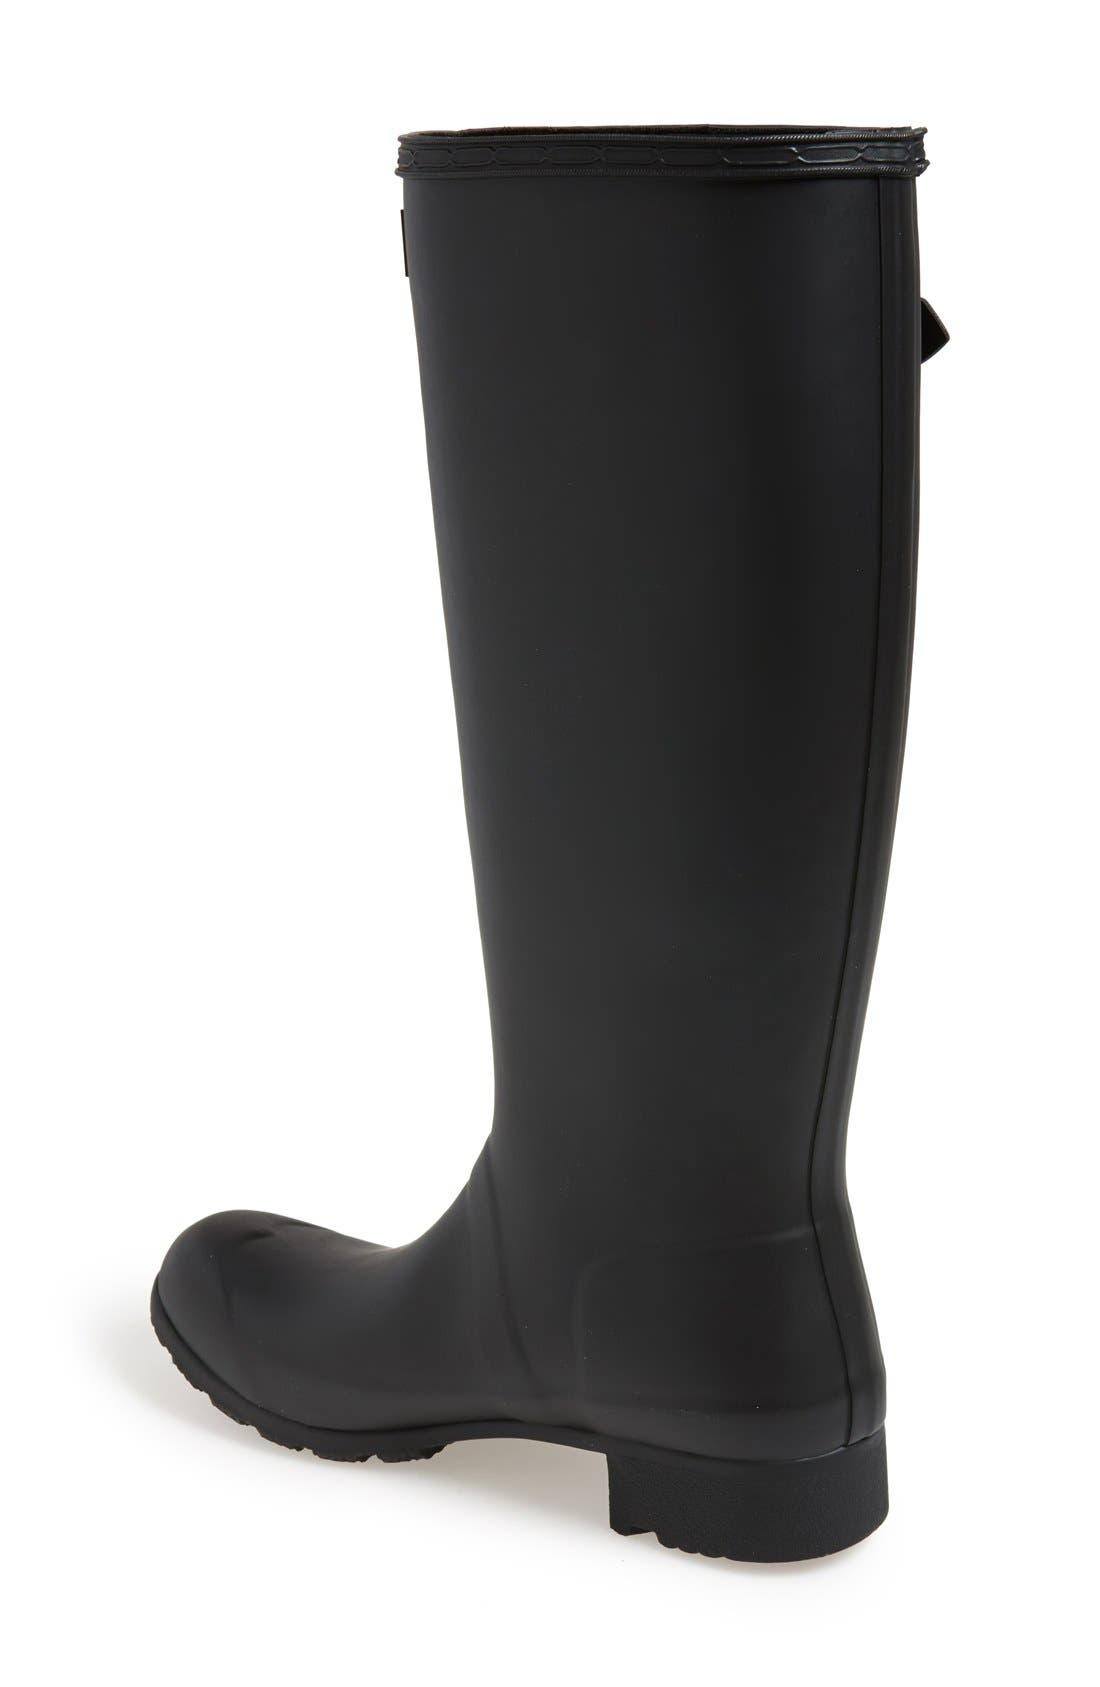 Tour Packable Rain Boot,                             Alternate thumbnail 3, color,                             BLACK/ BLACK